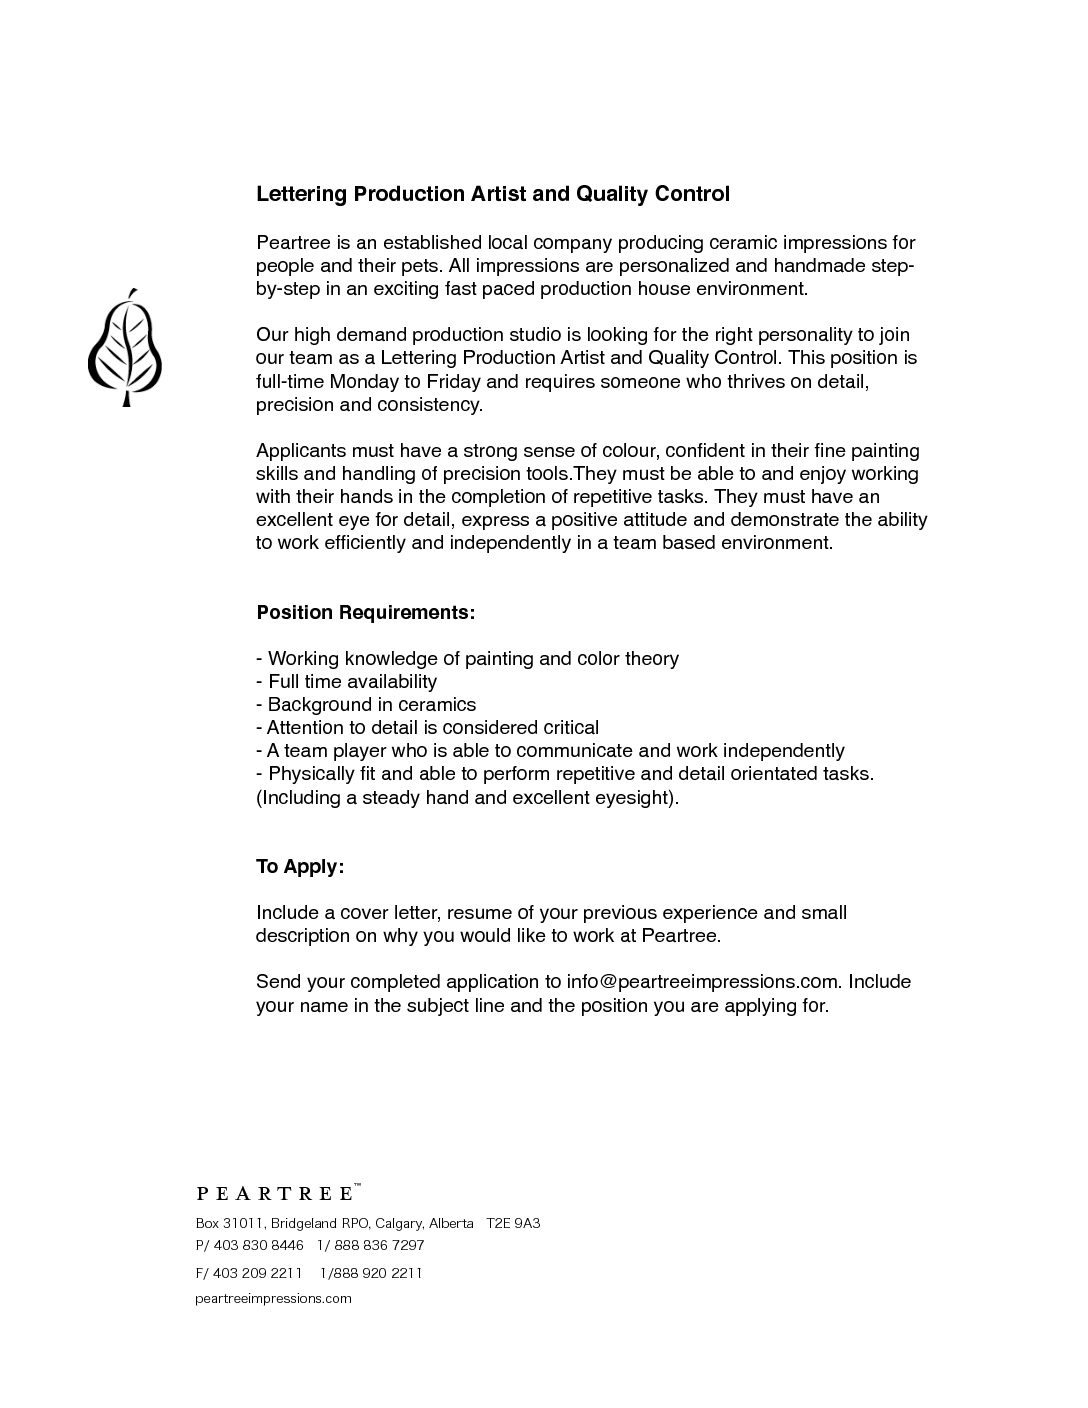 Lettering Production Artist And Quality Control PDF